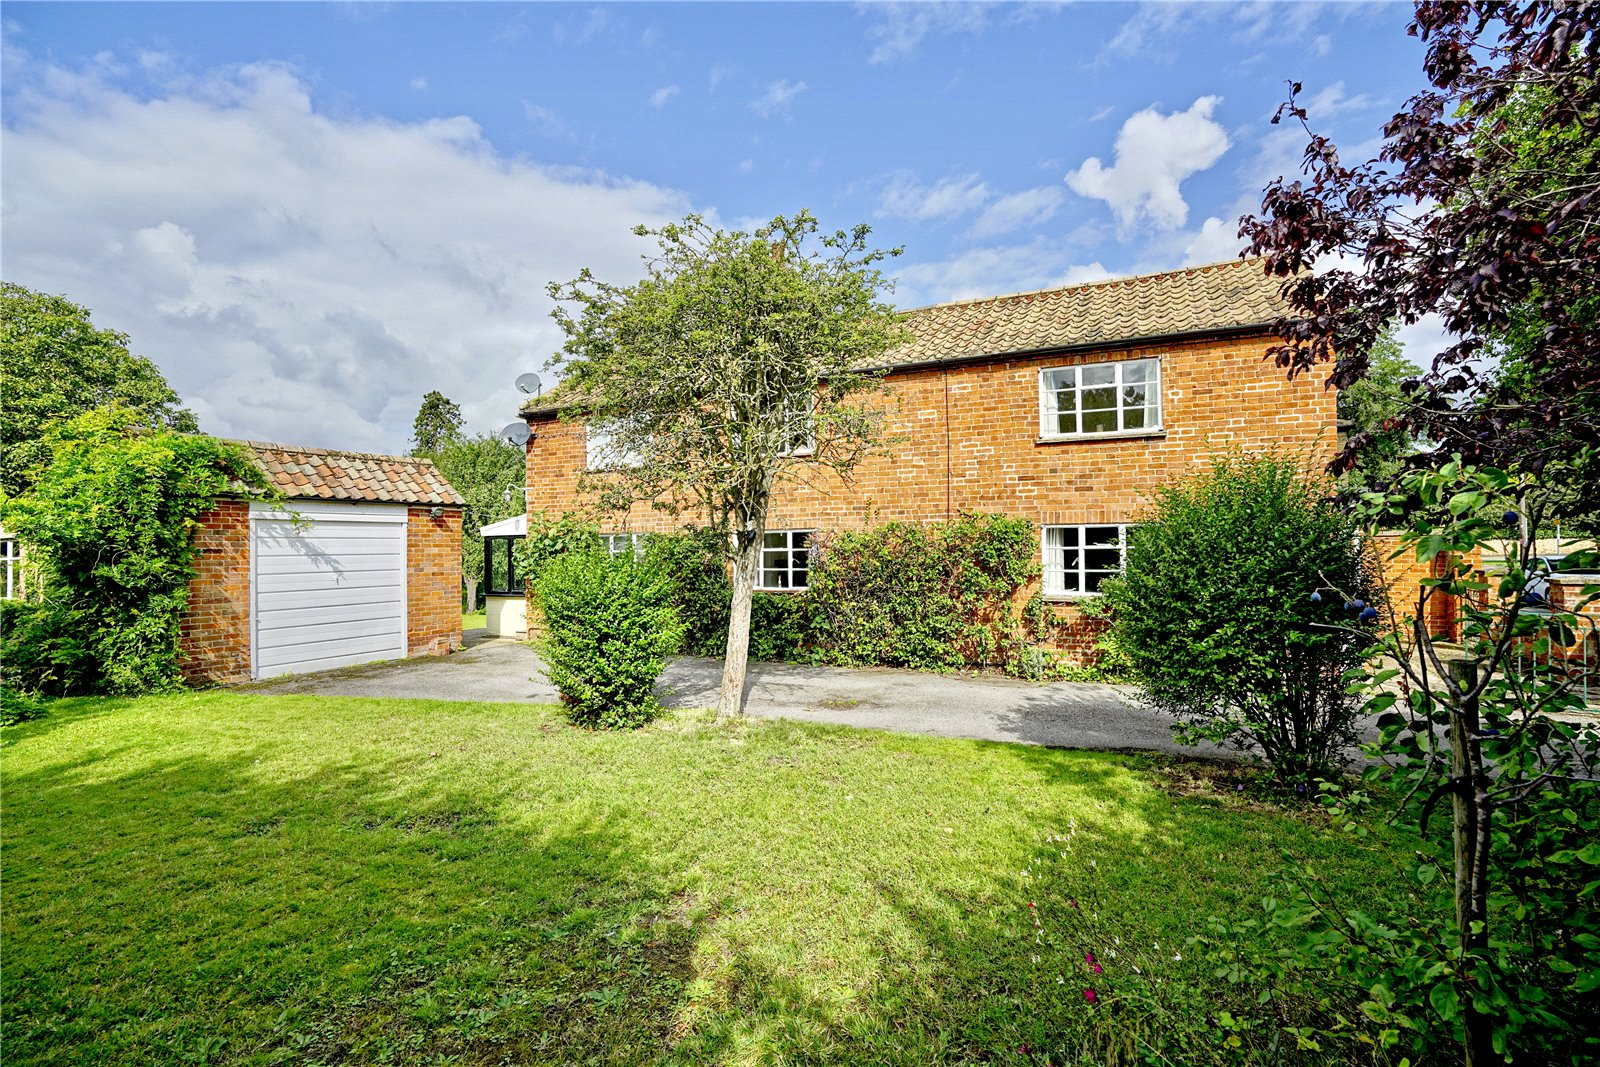 4 bed house for sale in Buckden, Hunts End, PE19 5SU, PE19